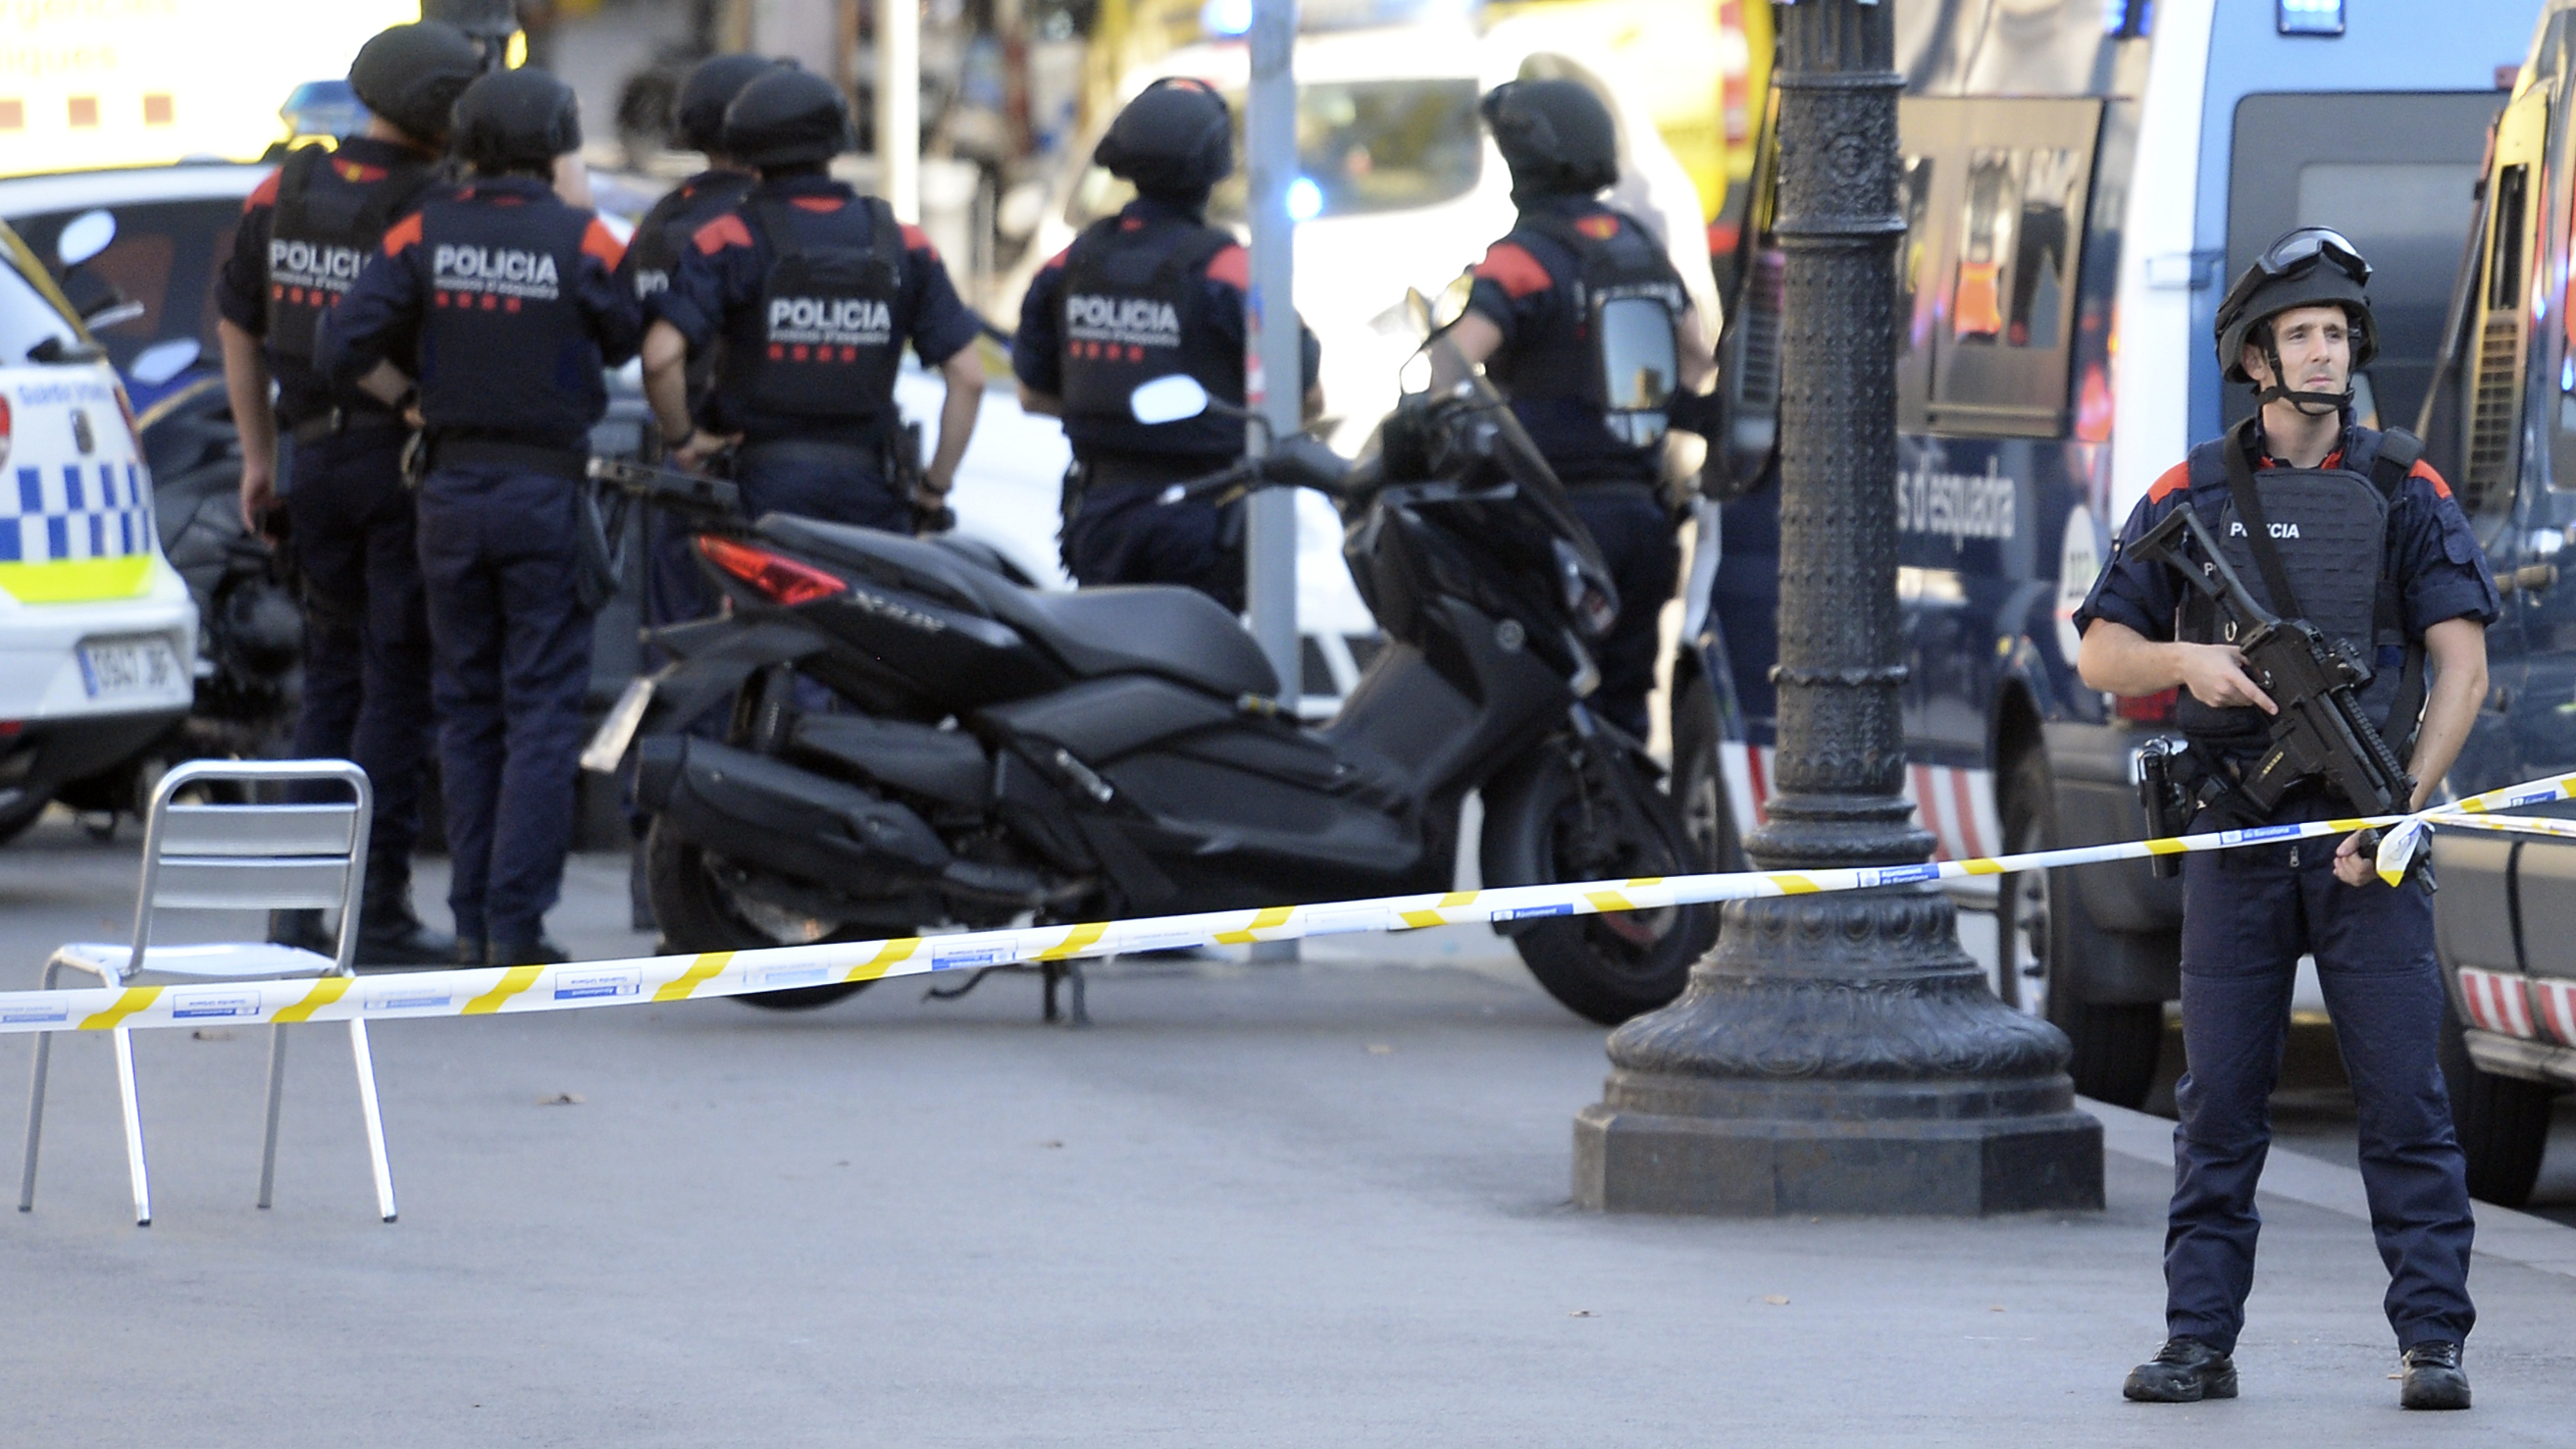 Authorities are asking people to stay away from Las Ramblas boulevard and a nearby public square in Barcelona. (Josep Lago/AFP/Getty Images)